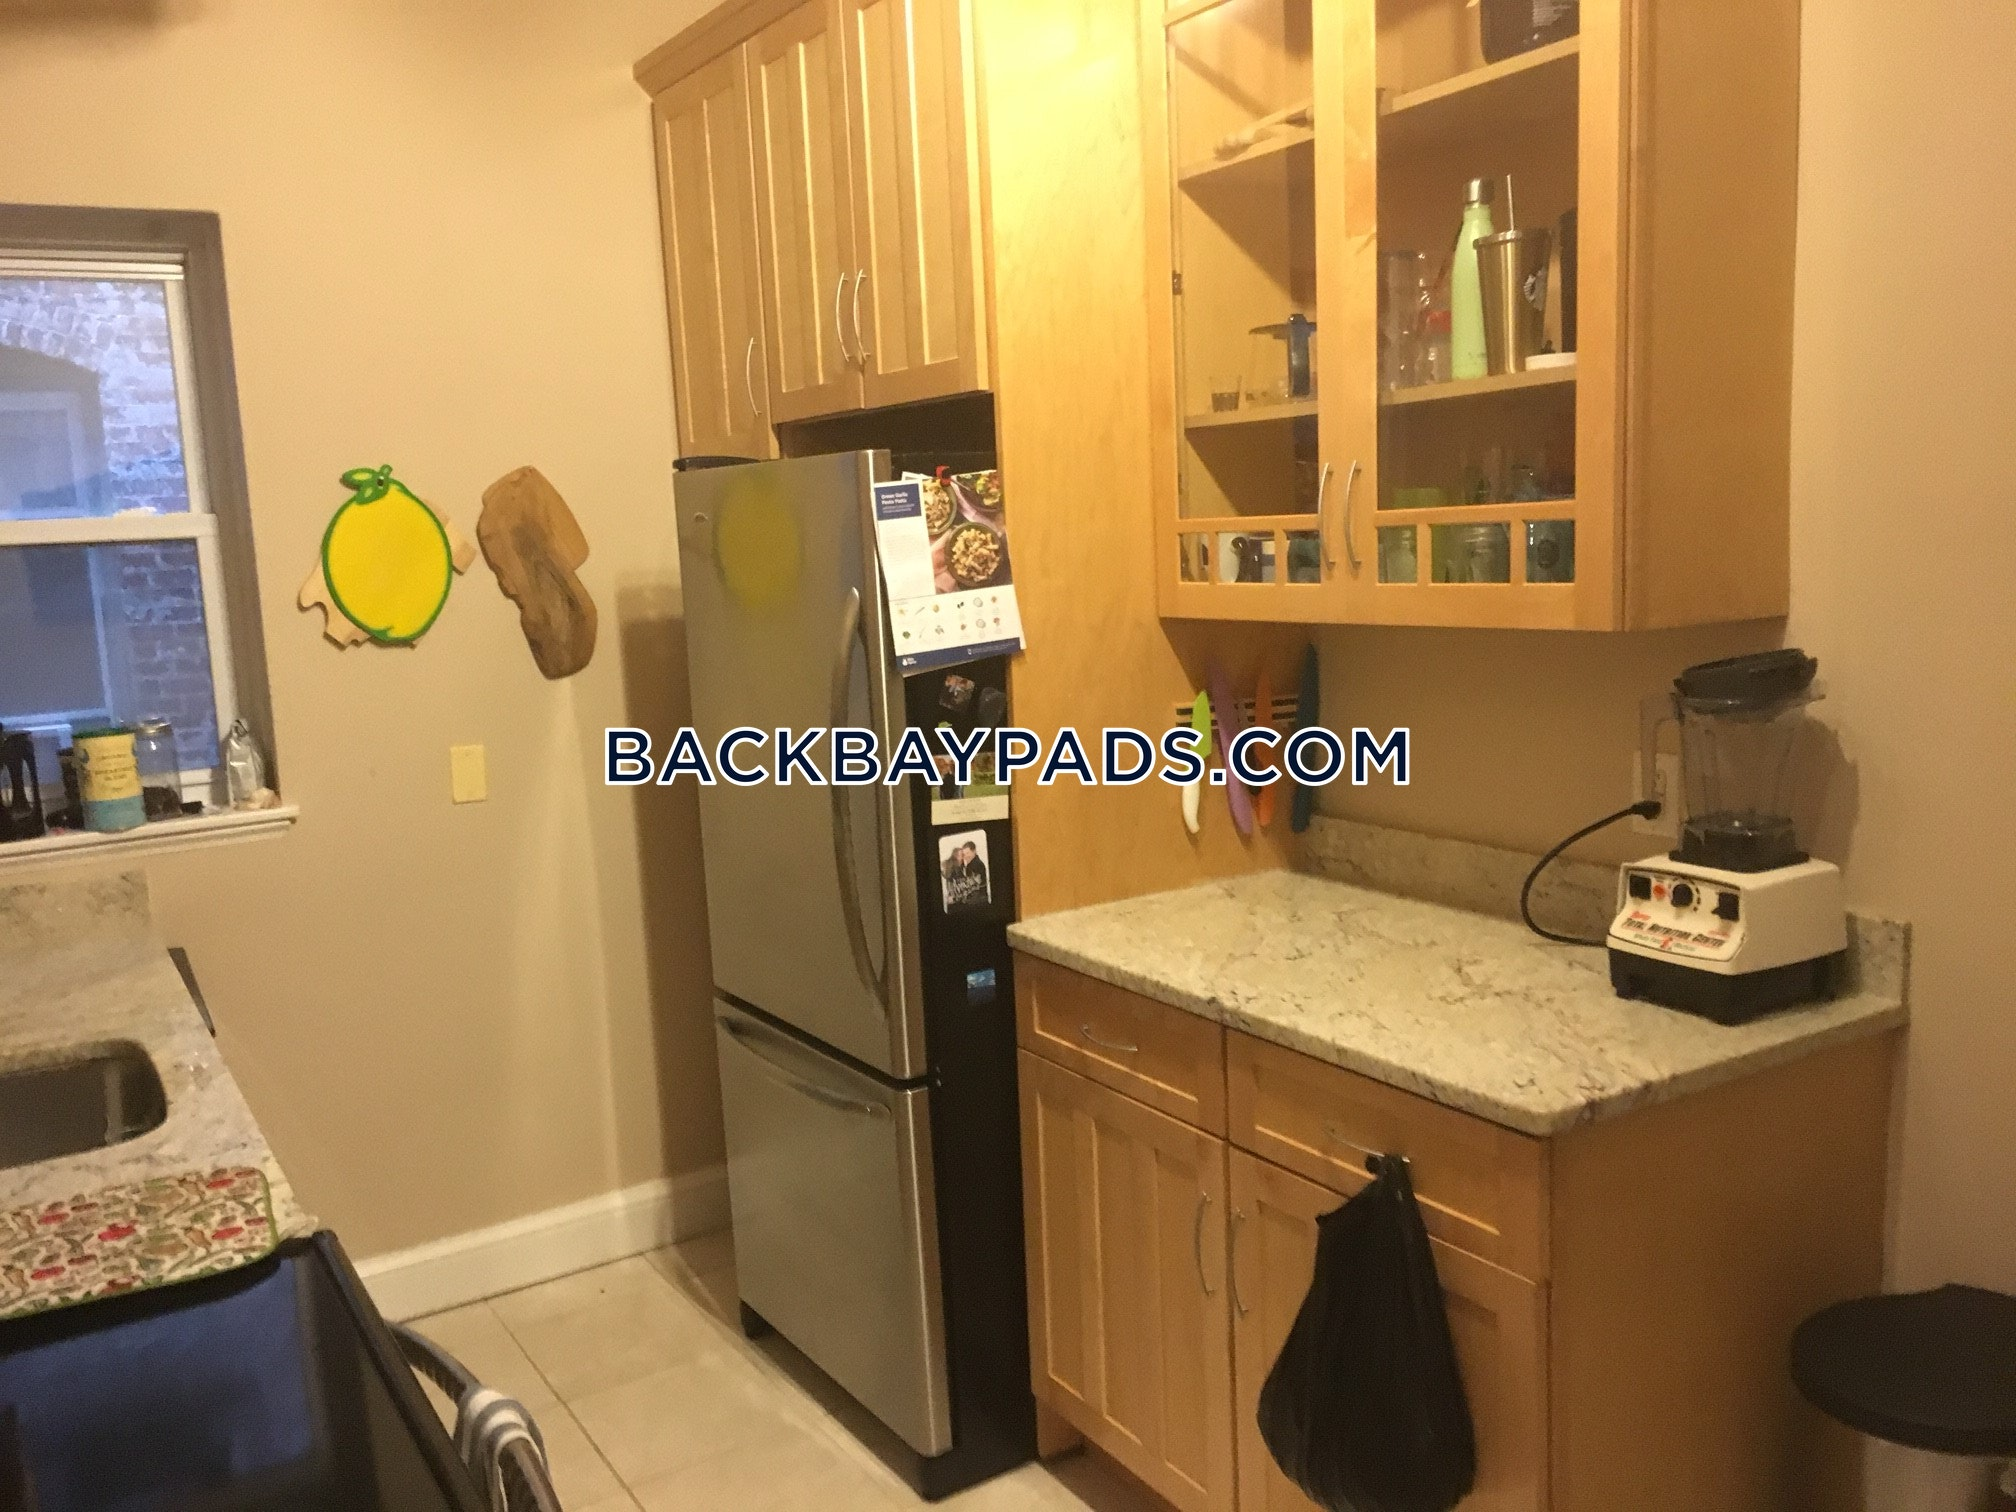 3 Beds 1.5 Baths - Boston - Back Bay $3,900